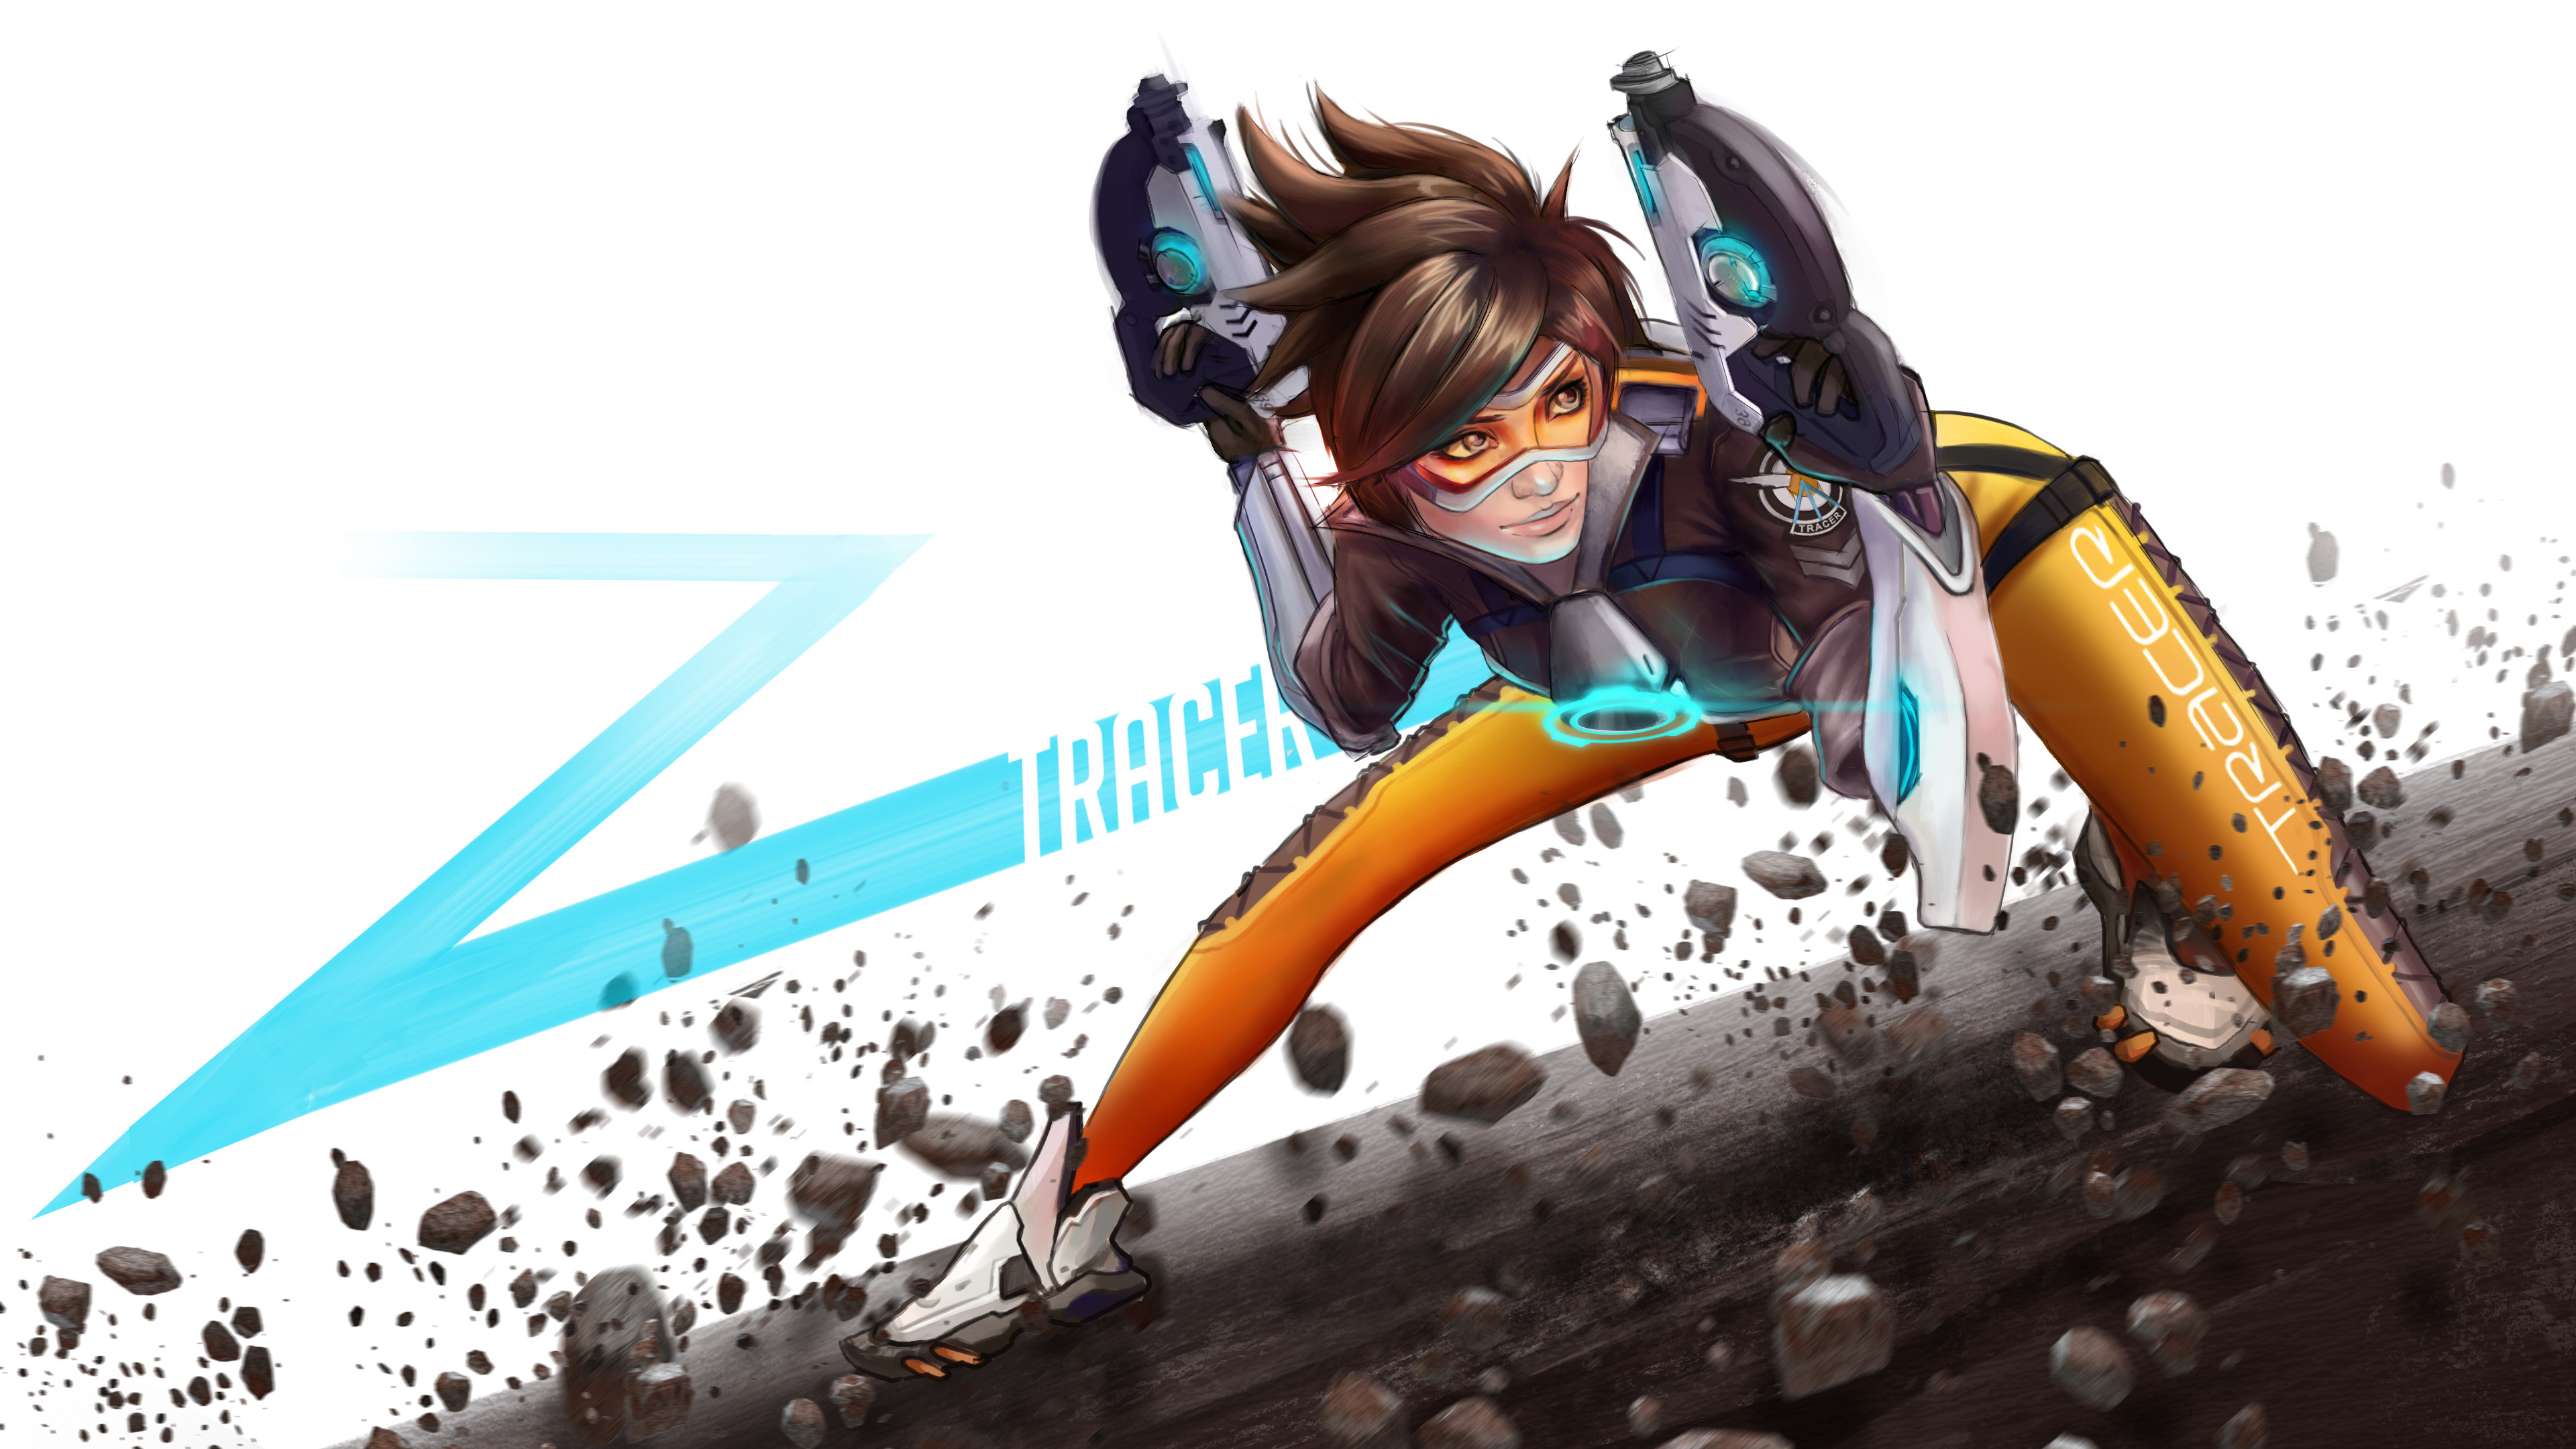 tracer overwatch digital art 4k ho 3840x2160 1 - Tracer Overwatch Art - tracer wallpaper 4k, Tracer Overwatch Art 4k wallpaper